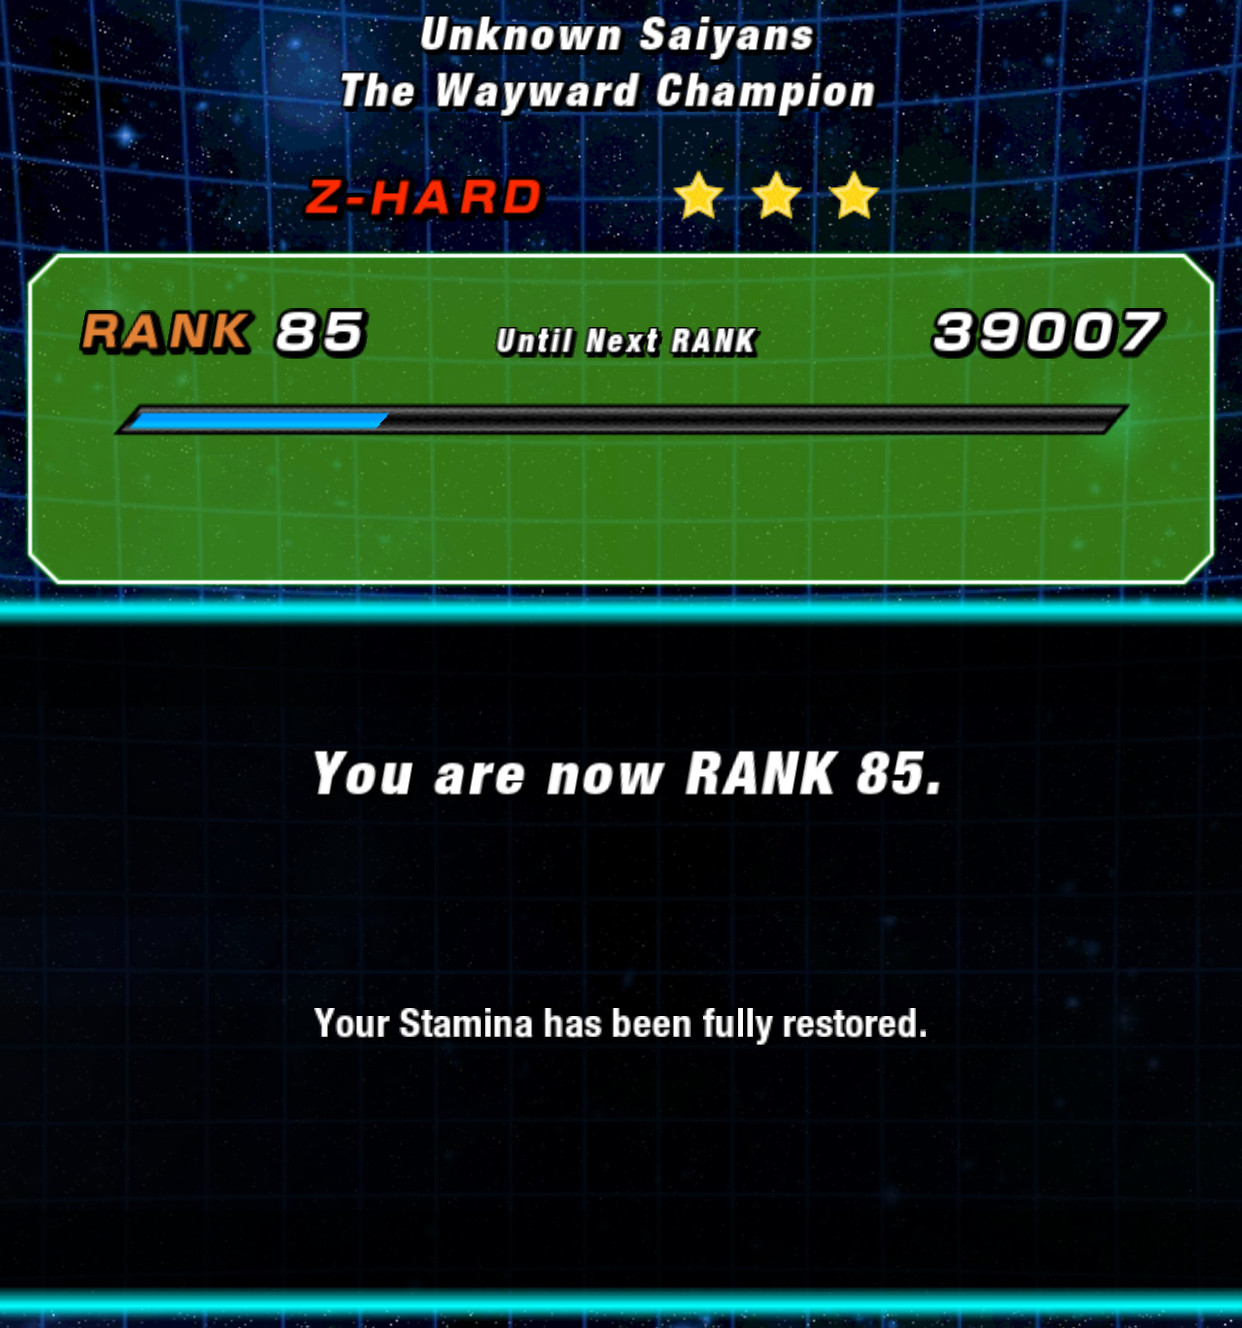 How to rank up?